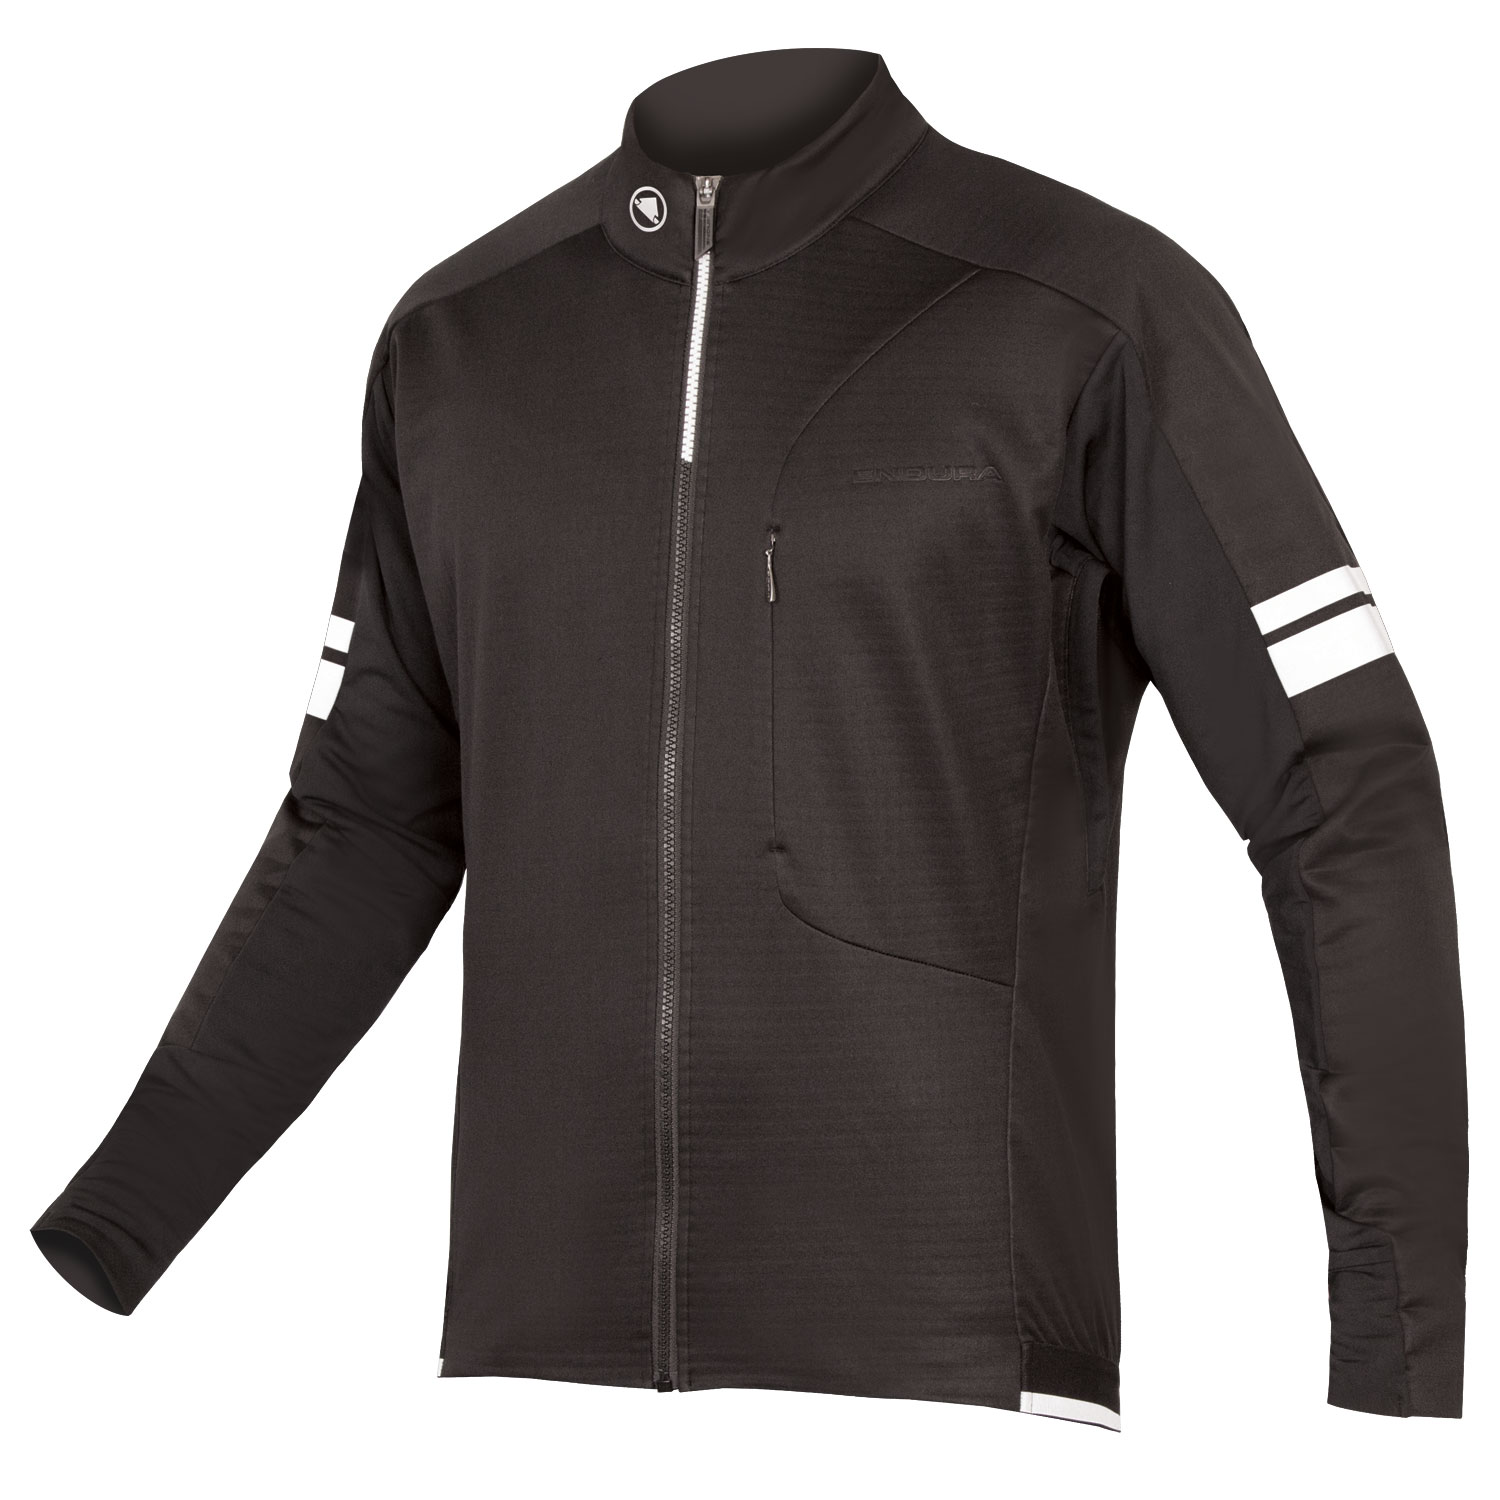 Endura Windchill (Extra Large) Windproof Winter Jacket